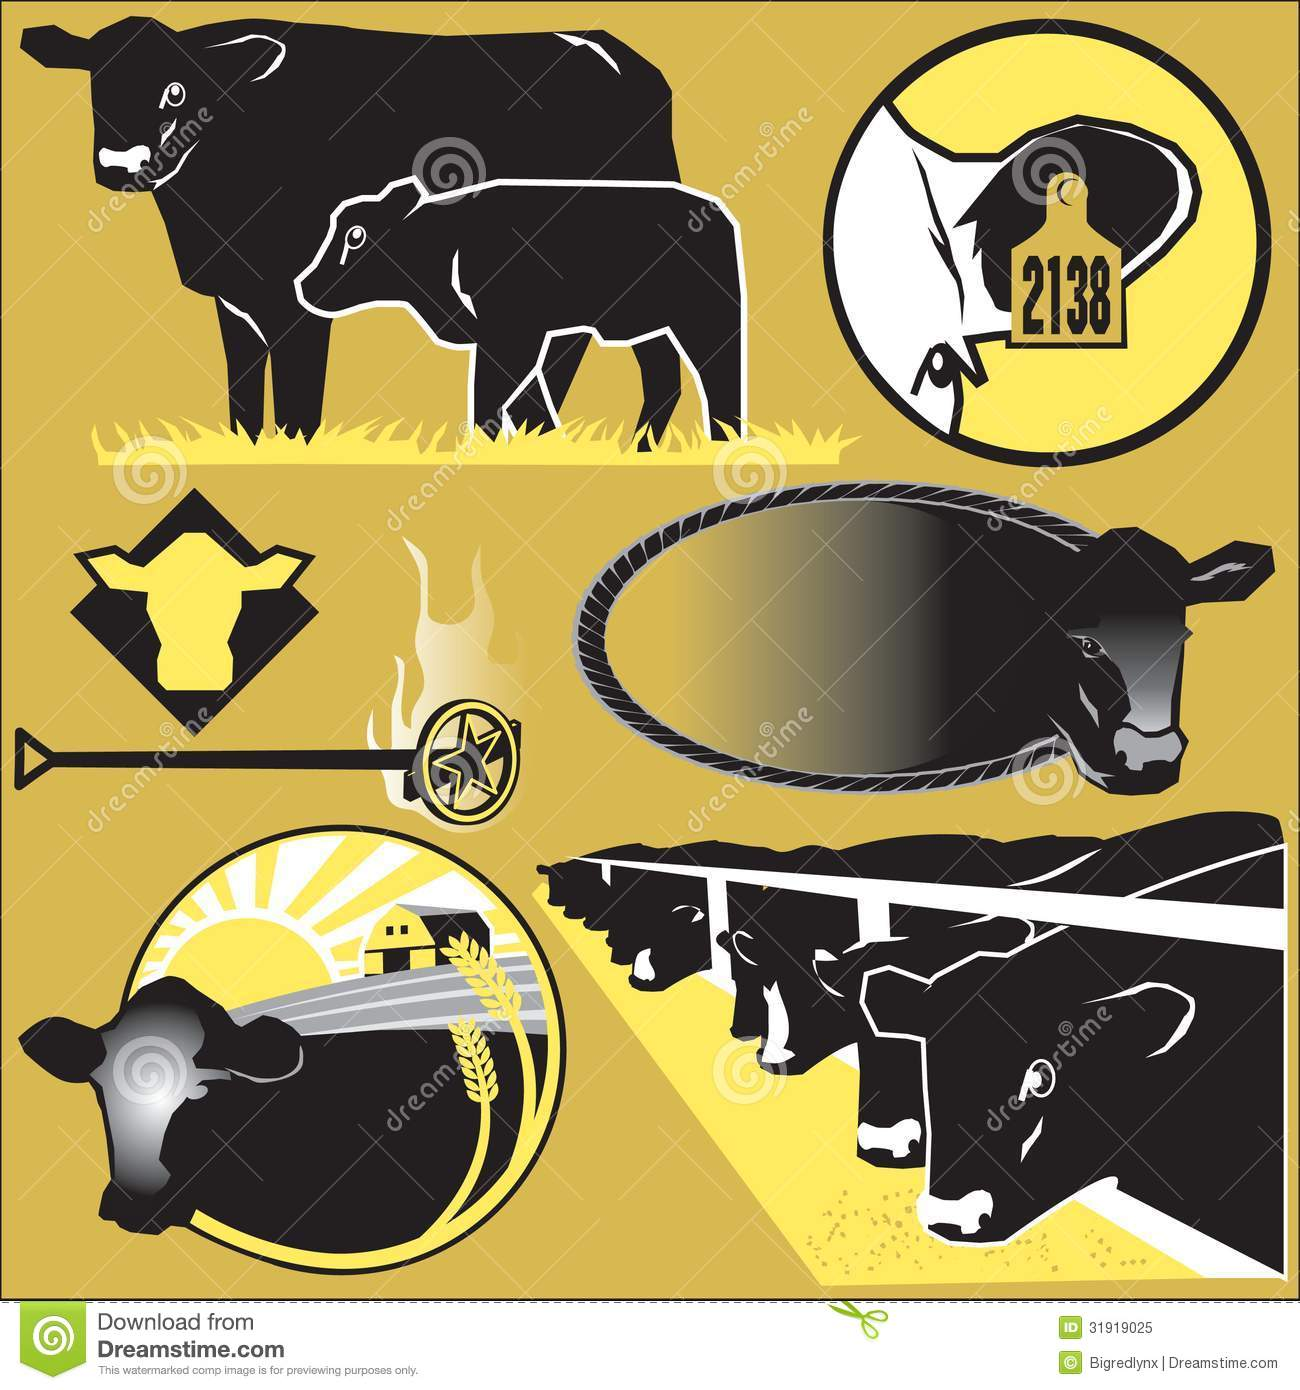 Cattle Clip Art Royalty Free Stock Photo.